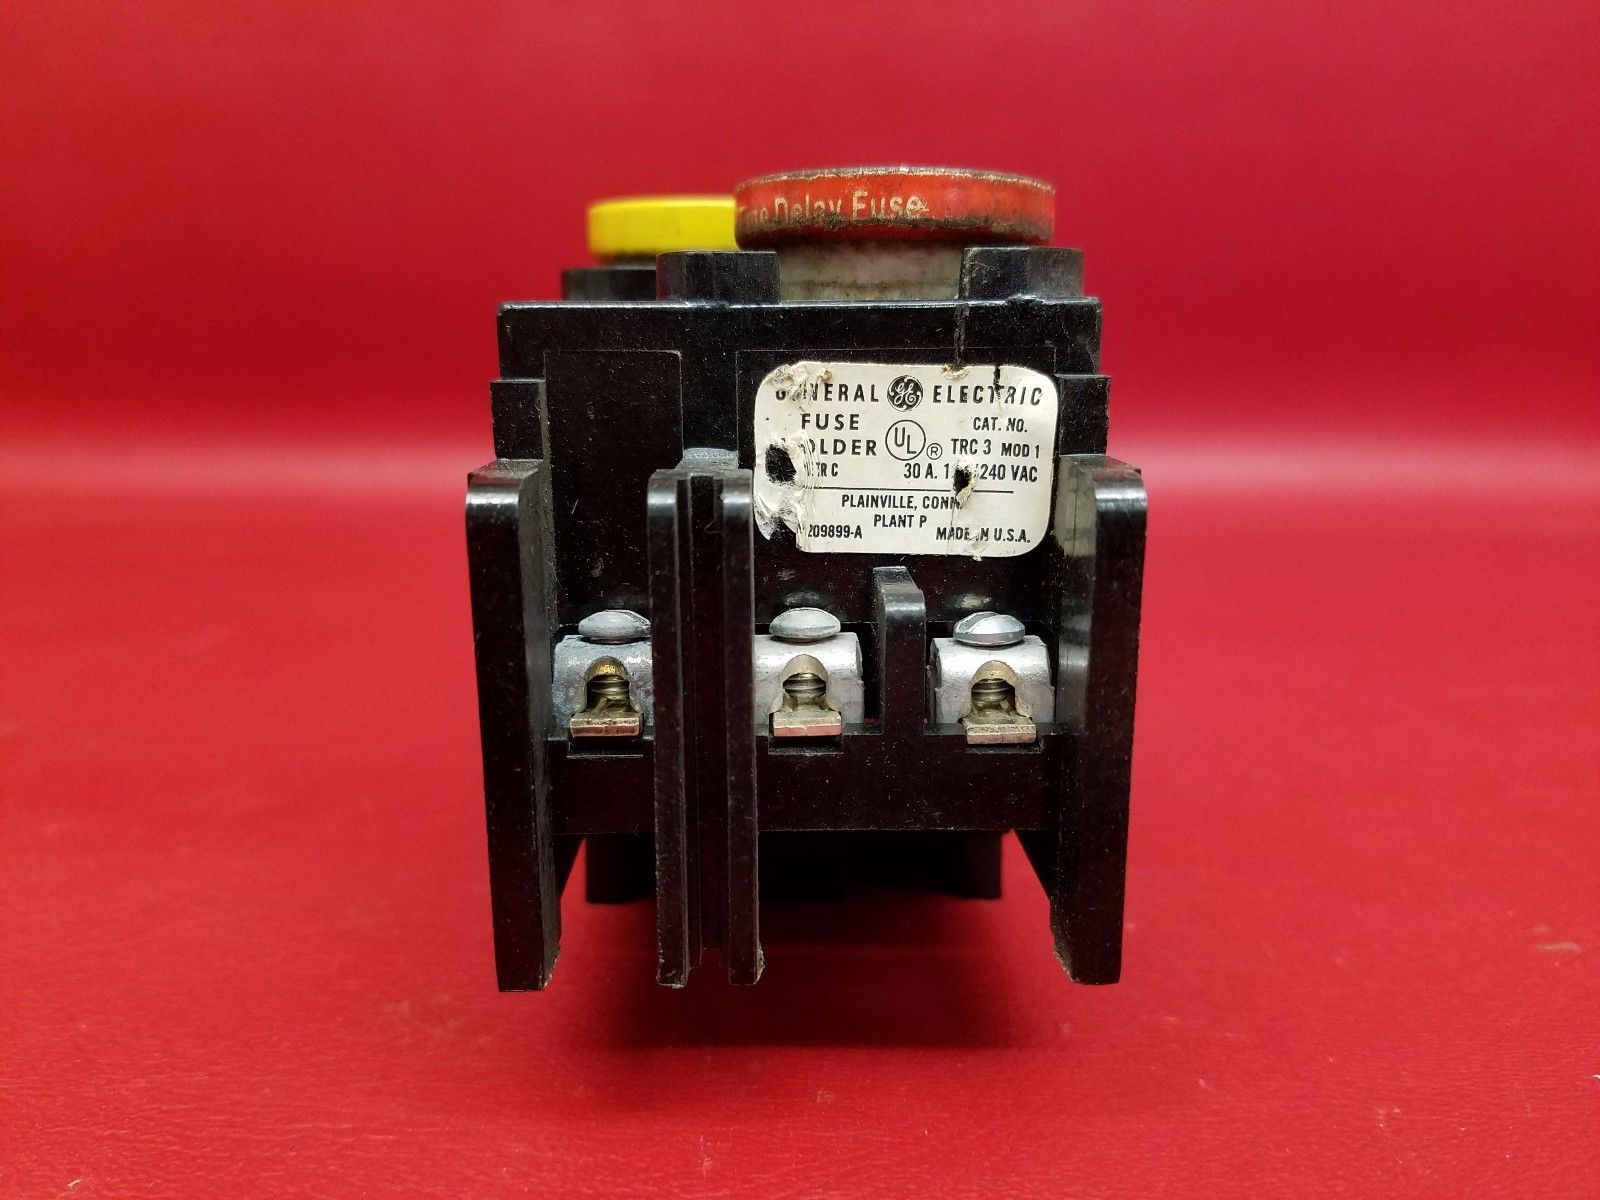 General Electric Fuse Block Obsolete Ge Box A Holds Fuses With 1600x1200